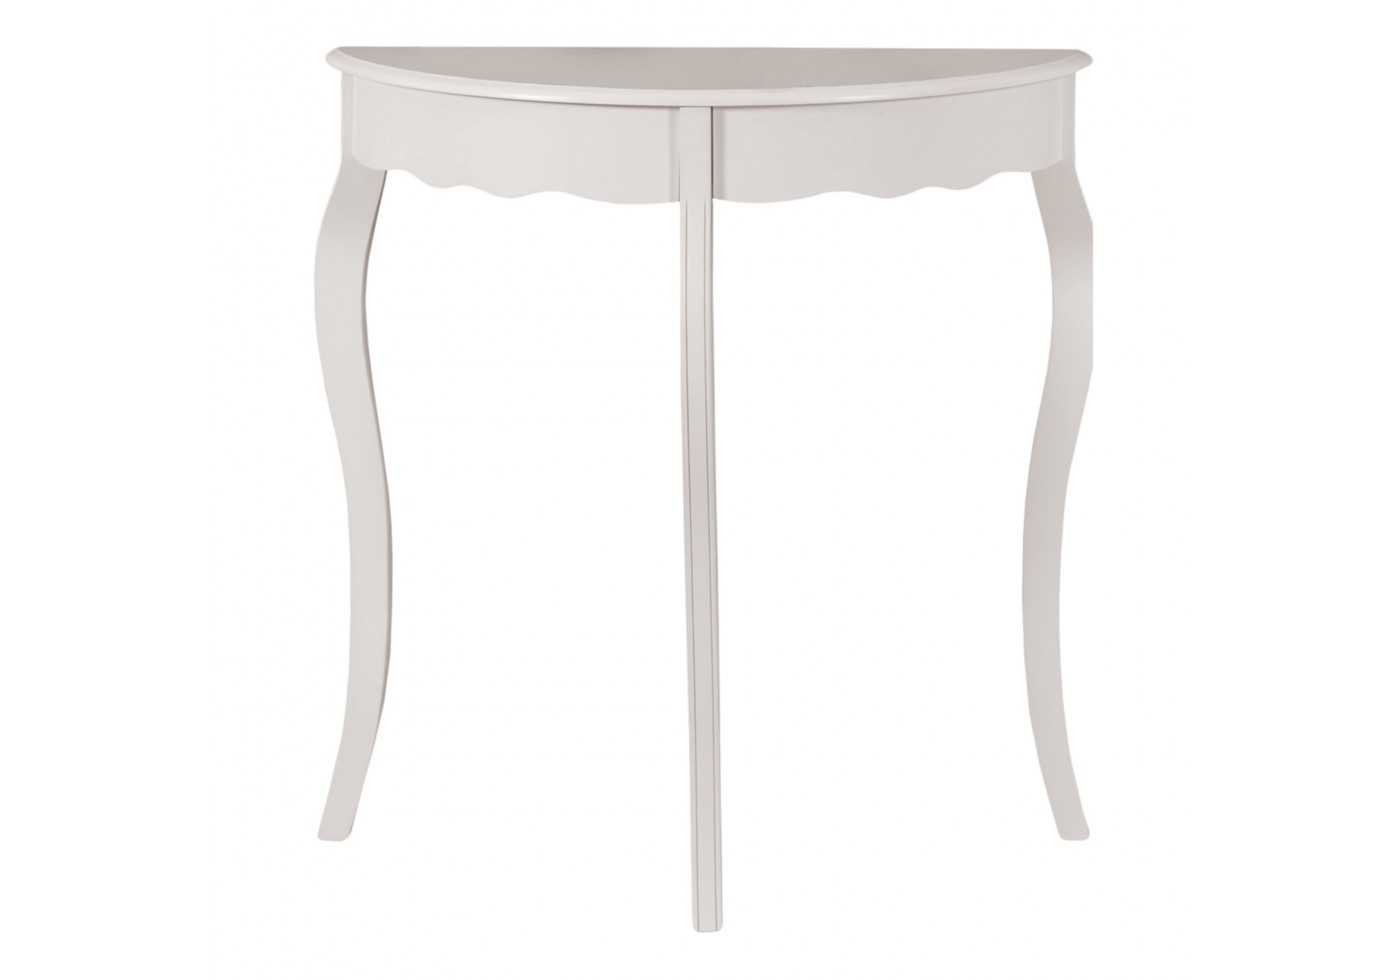 accent table antique white hall console round wicker side glass end with shelf replica scandinavian furniture high uma wooden garden ideas classic design outdoor lounge chairs